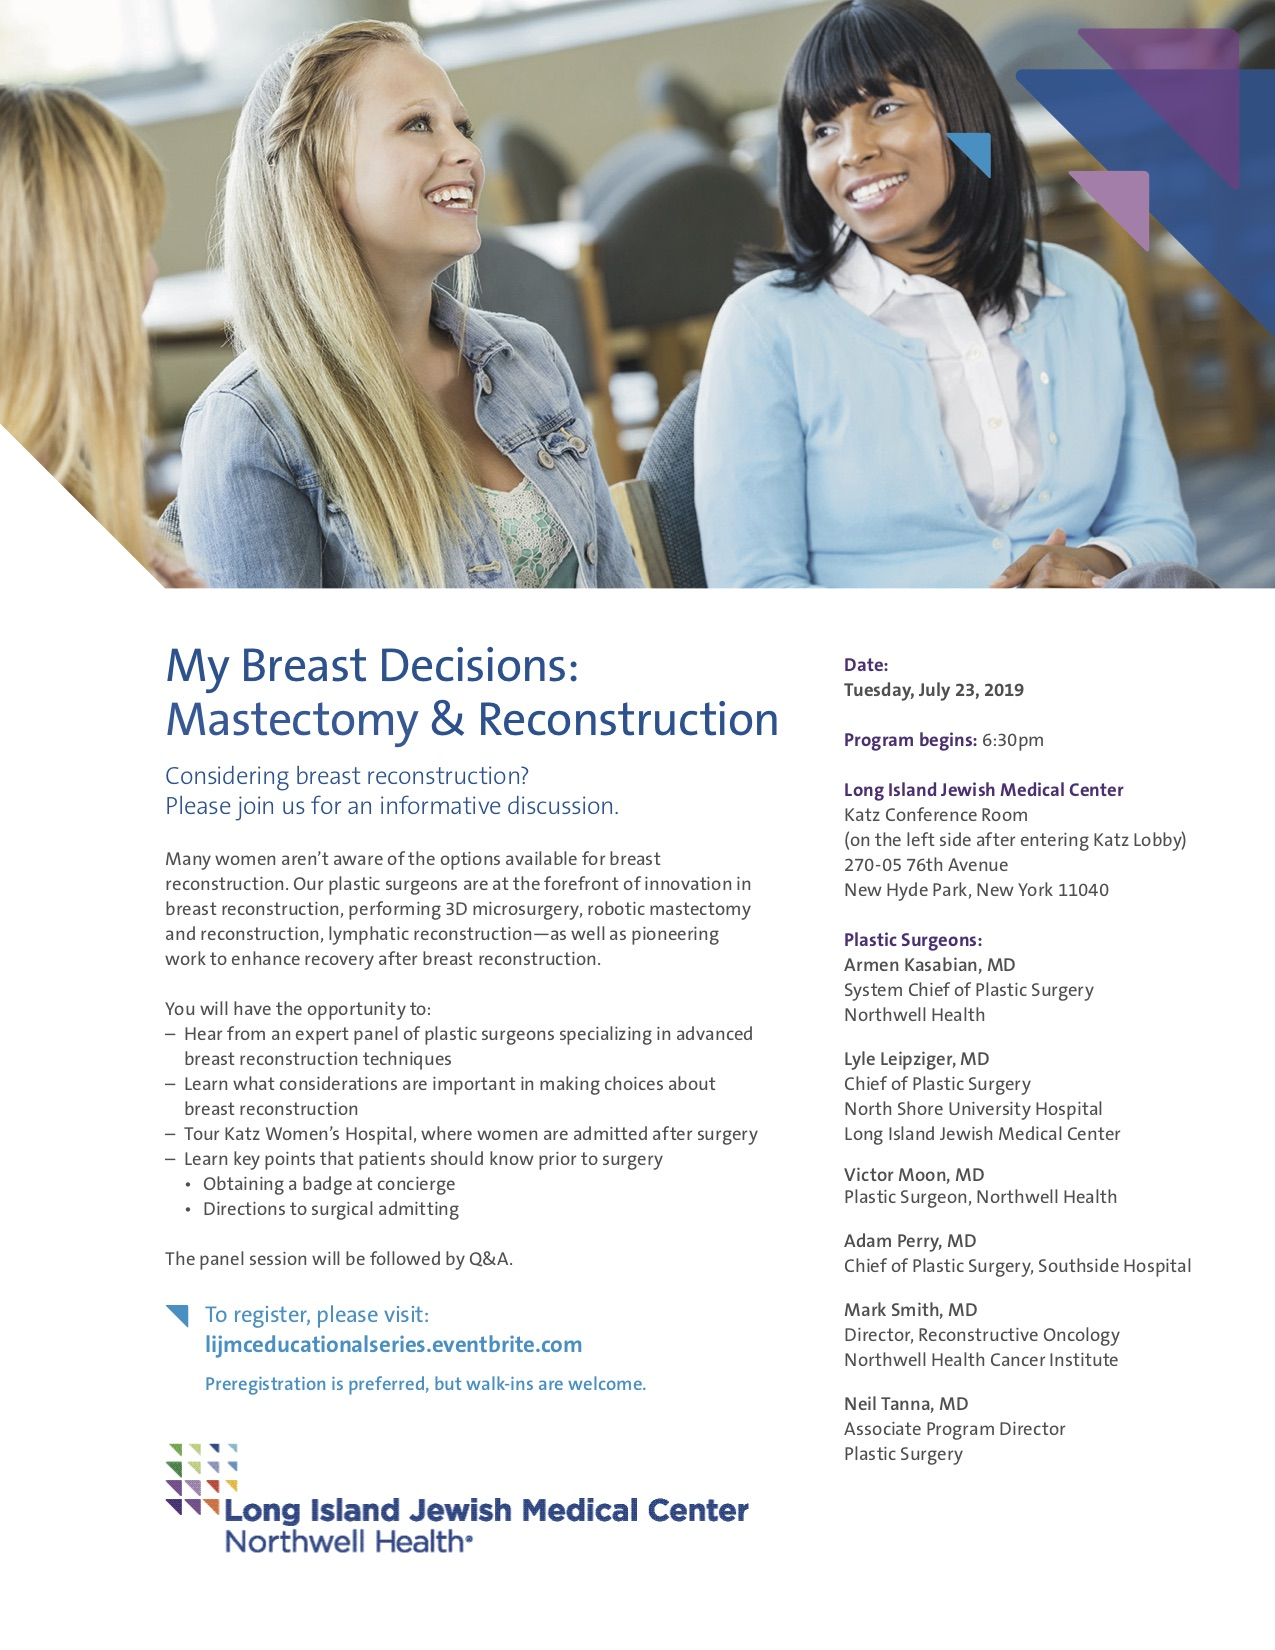 My Breast Decision: Mastectomy & Reconstruction